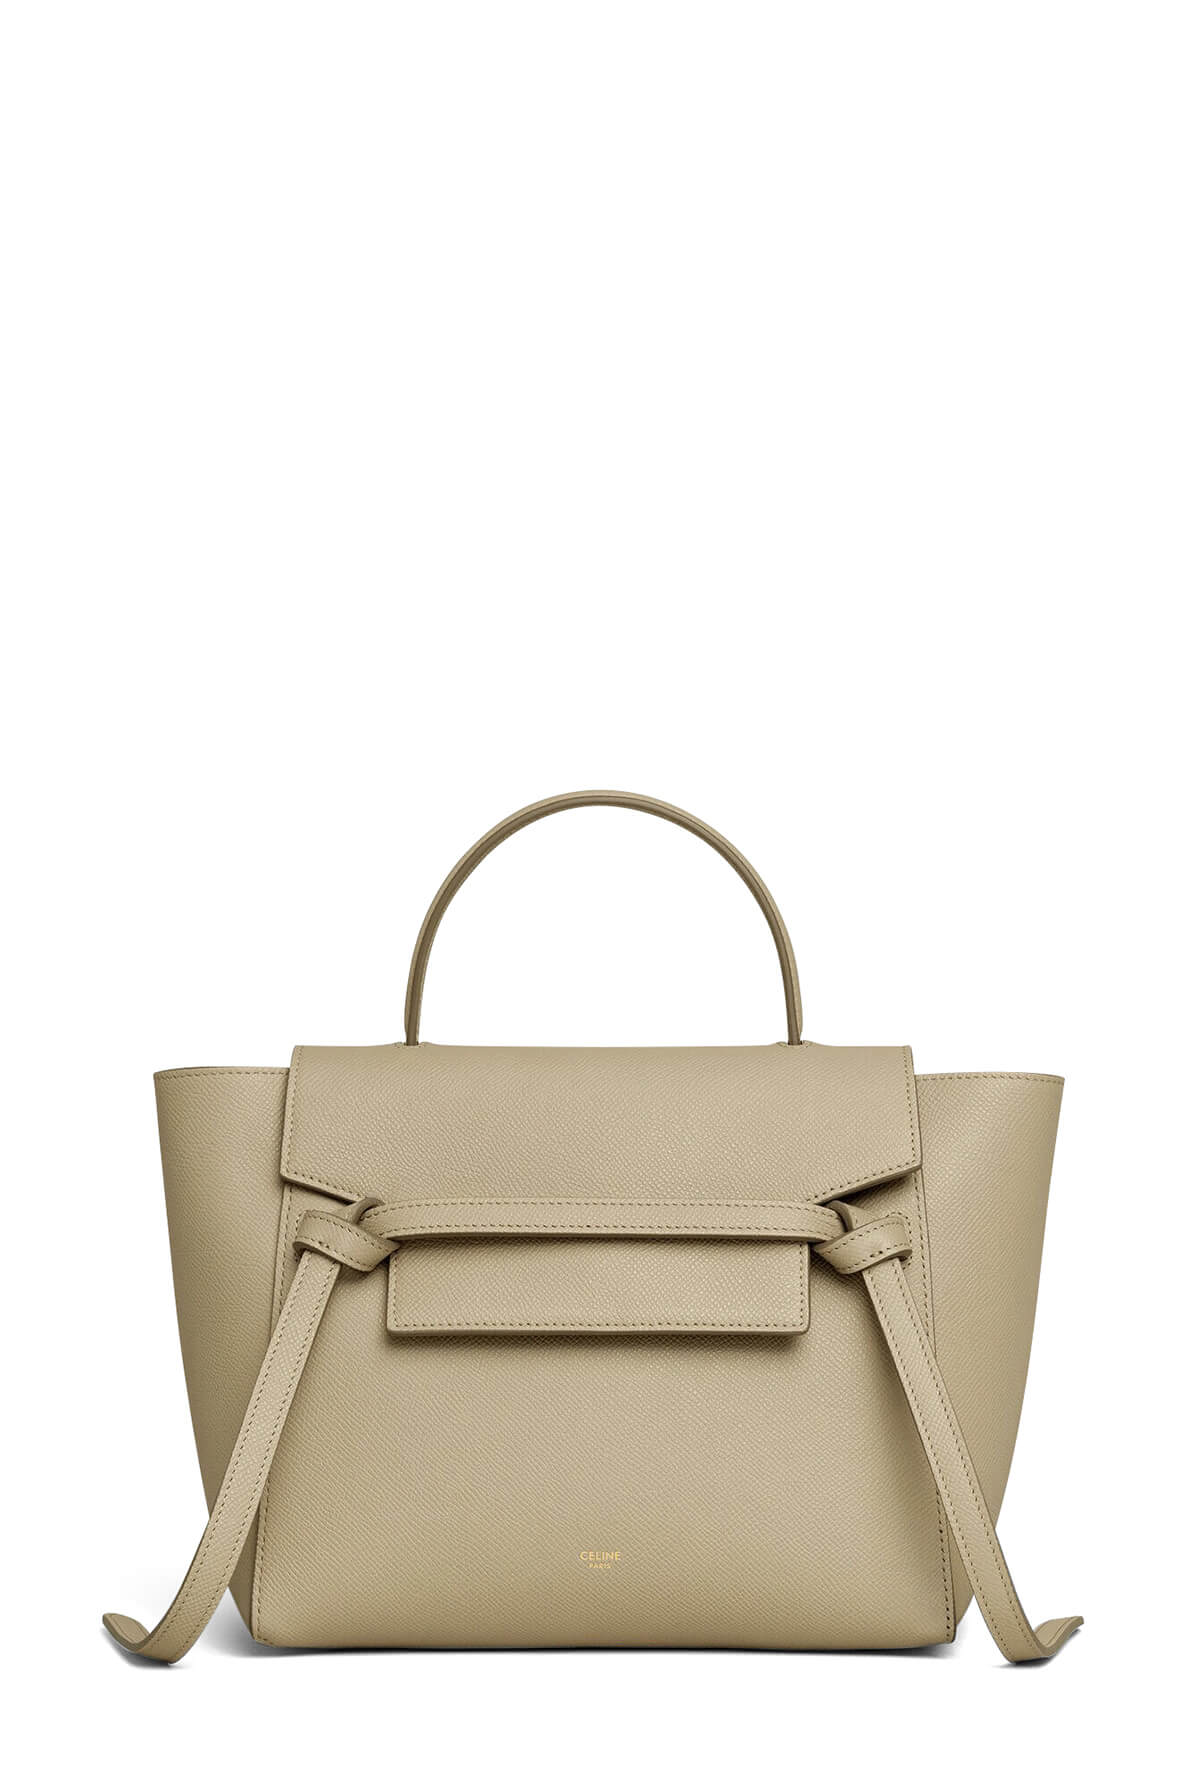 Micro Belt Bag Light Taupe By Celine Style Theory Bags